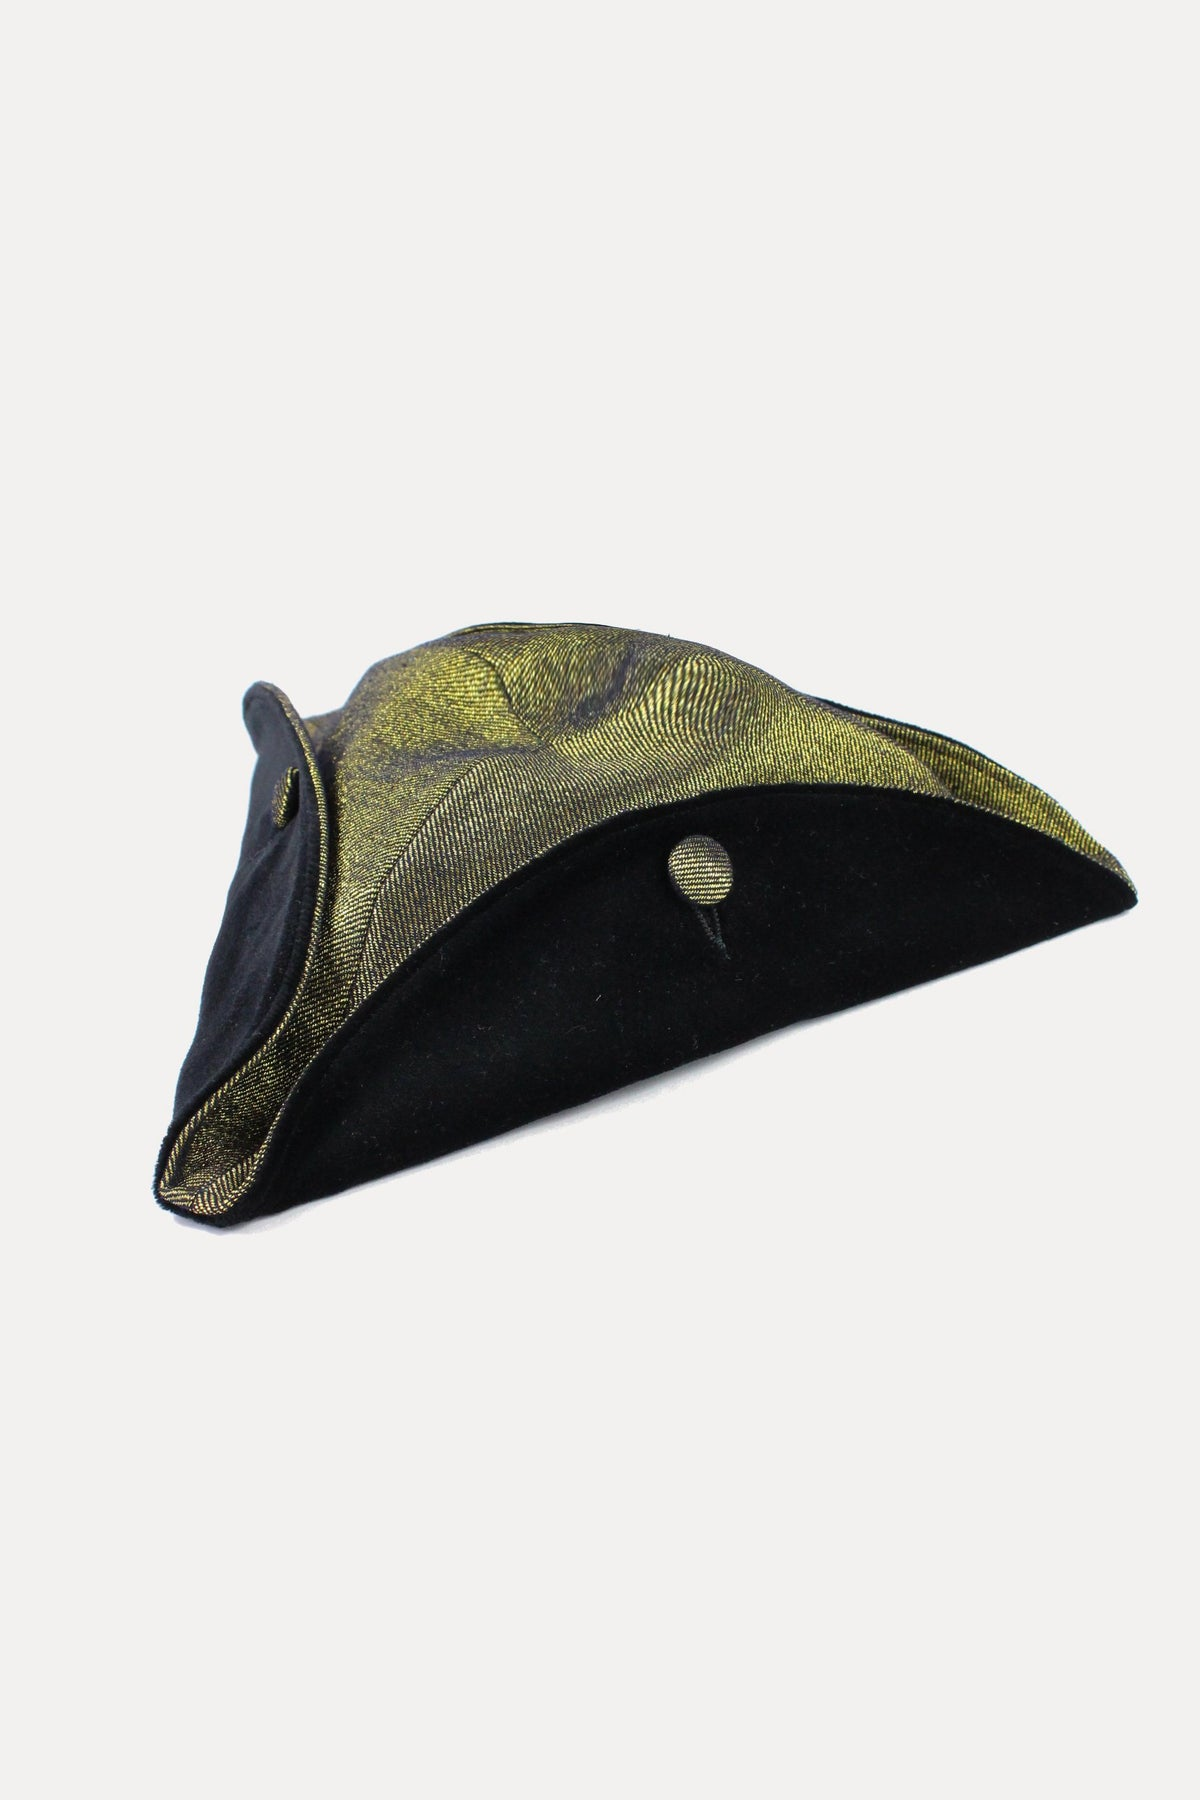 SMALL TRICORNE - GOLD DENIM AND VELVET-hats-A Child Of The Jago